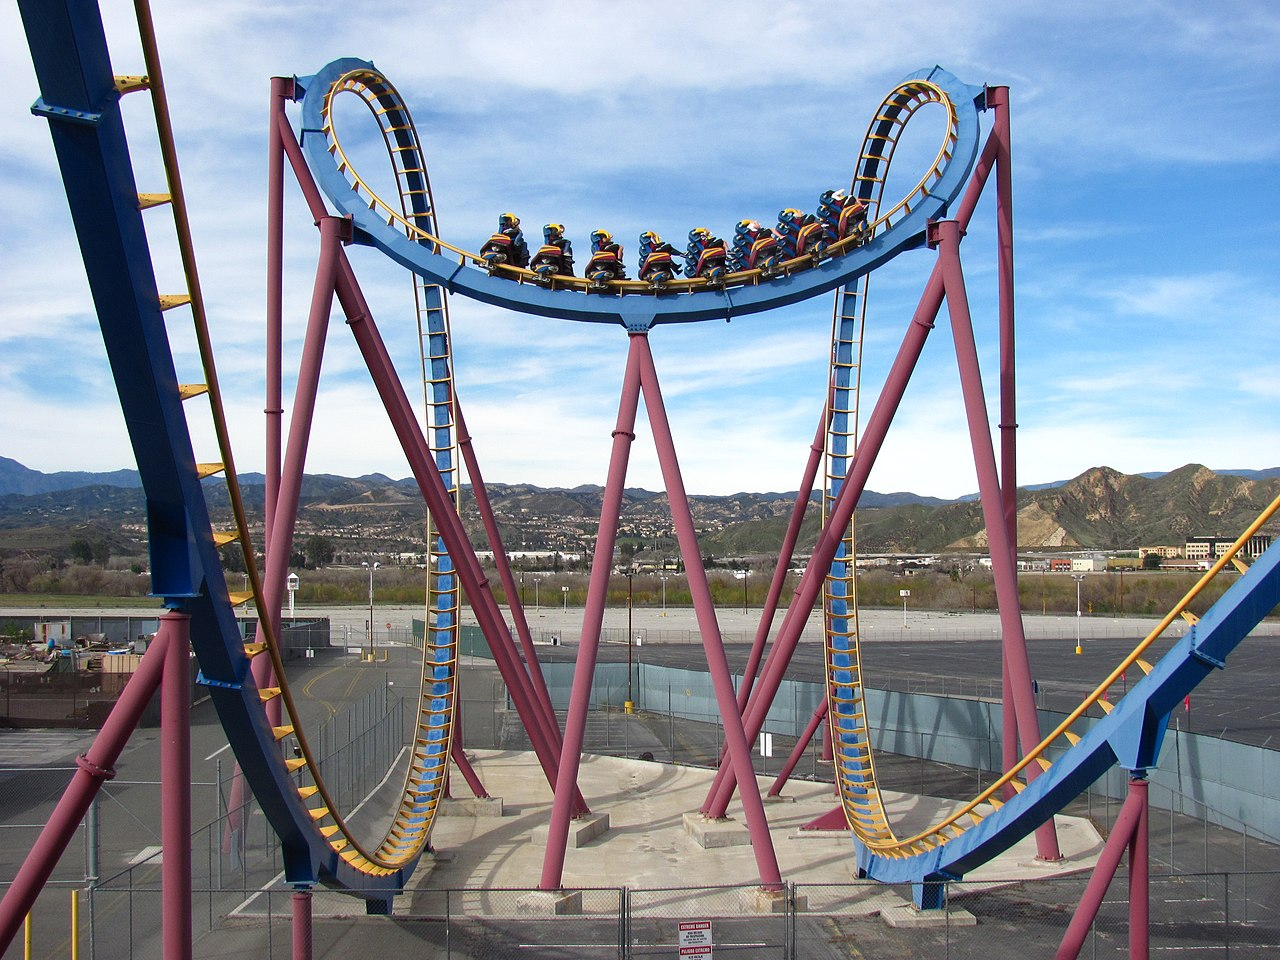 1280px-Scream_cobra_roll.jpg